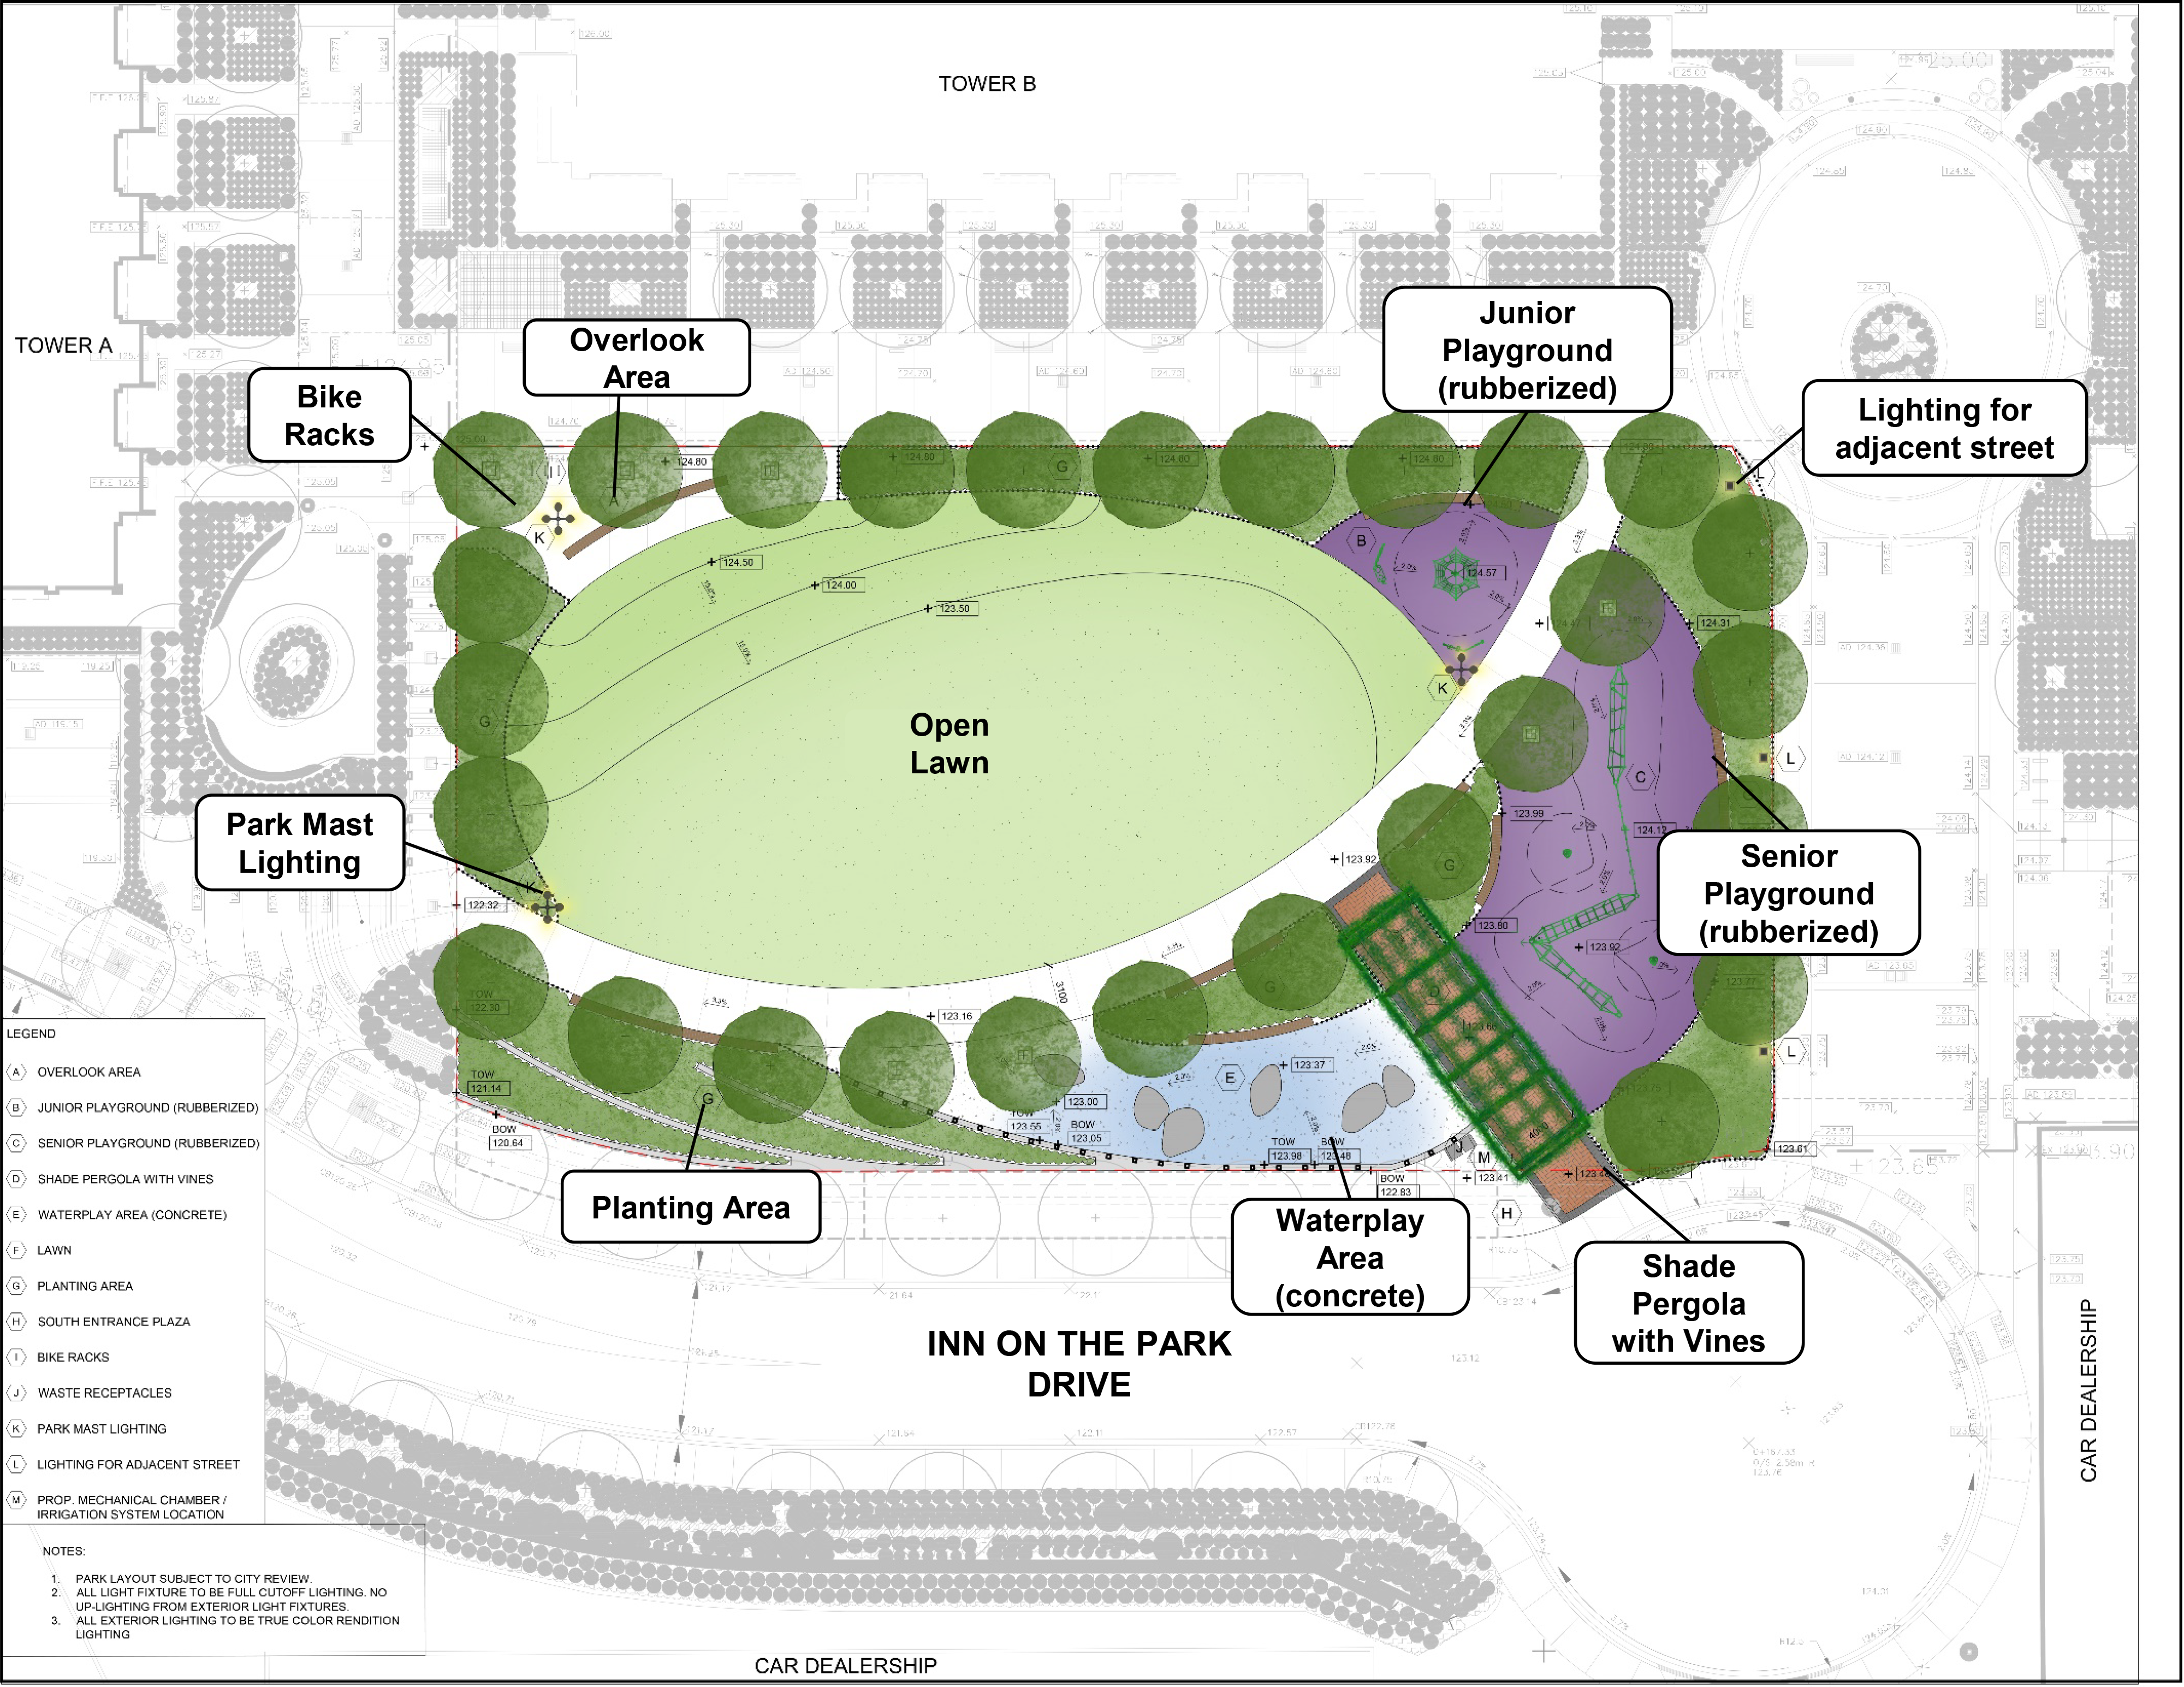 An aerial image of the final concept plan for the new park at the Leslie and Eglinton development is shown. The concept plan includes a separated junior and senior kid's playground areas located on the east side of the park, an overlook area moved to the park's north-east corner, a south entrance plaza and shade pergola with vines, and a paved walkway stretching from the north-east and south-west corners of the park